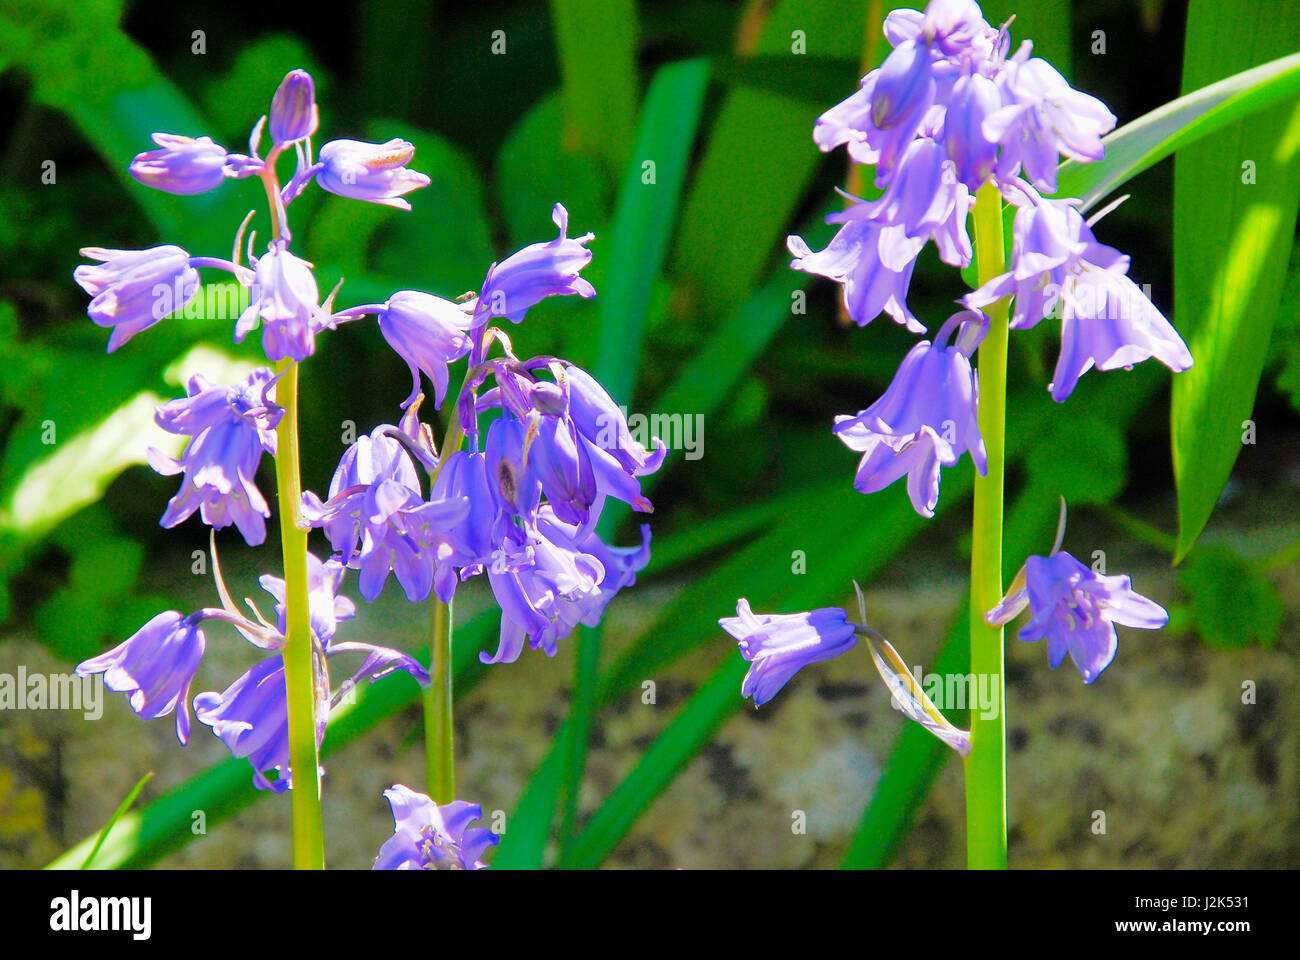 Portland, Dorset, UK. 29th April, 2017. Bluebells growing in semi-shade in a sunny Portland garden Credit: stuart - Stock Image